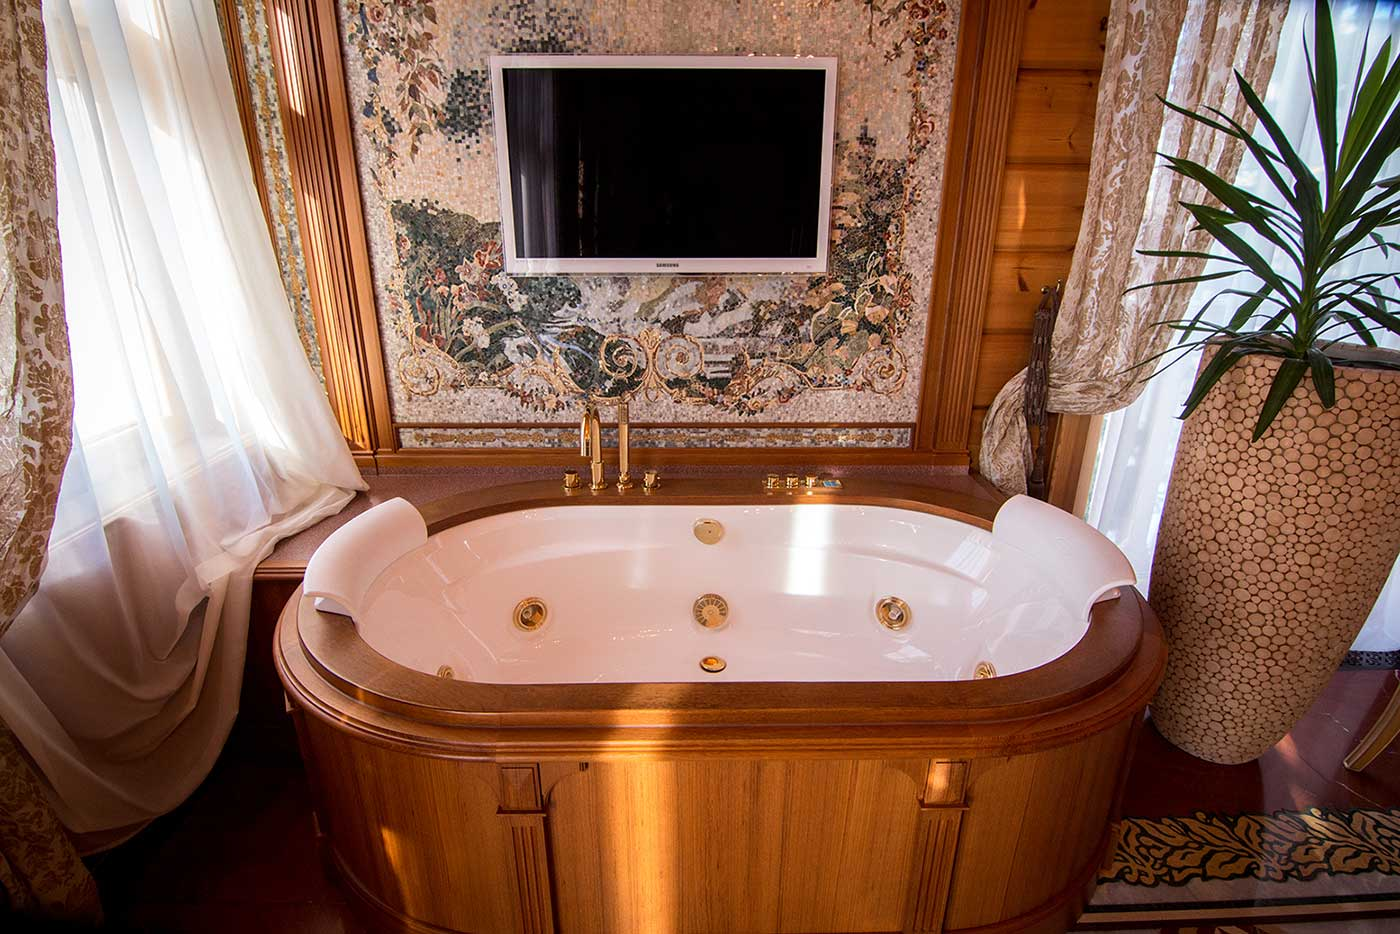 Yanukovych's private ensuite bathroom. Mezhyhirya, Ukraine.